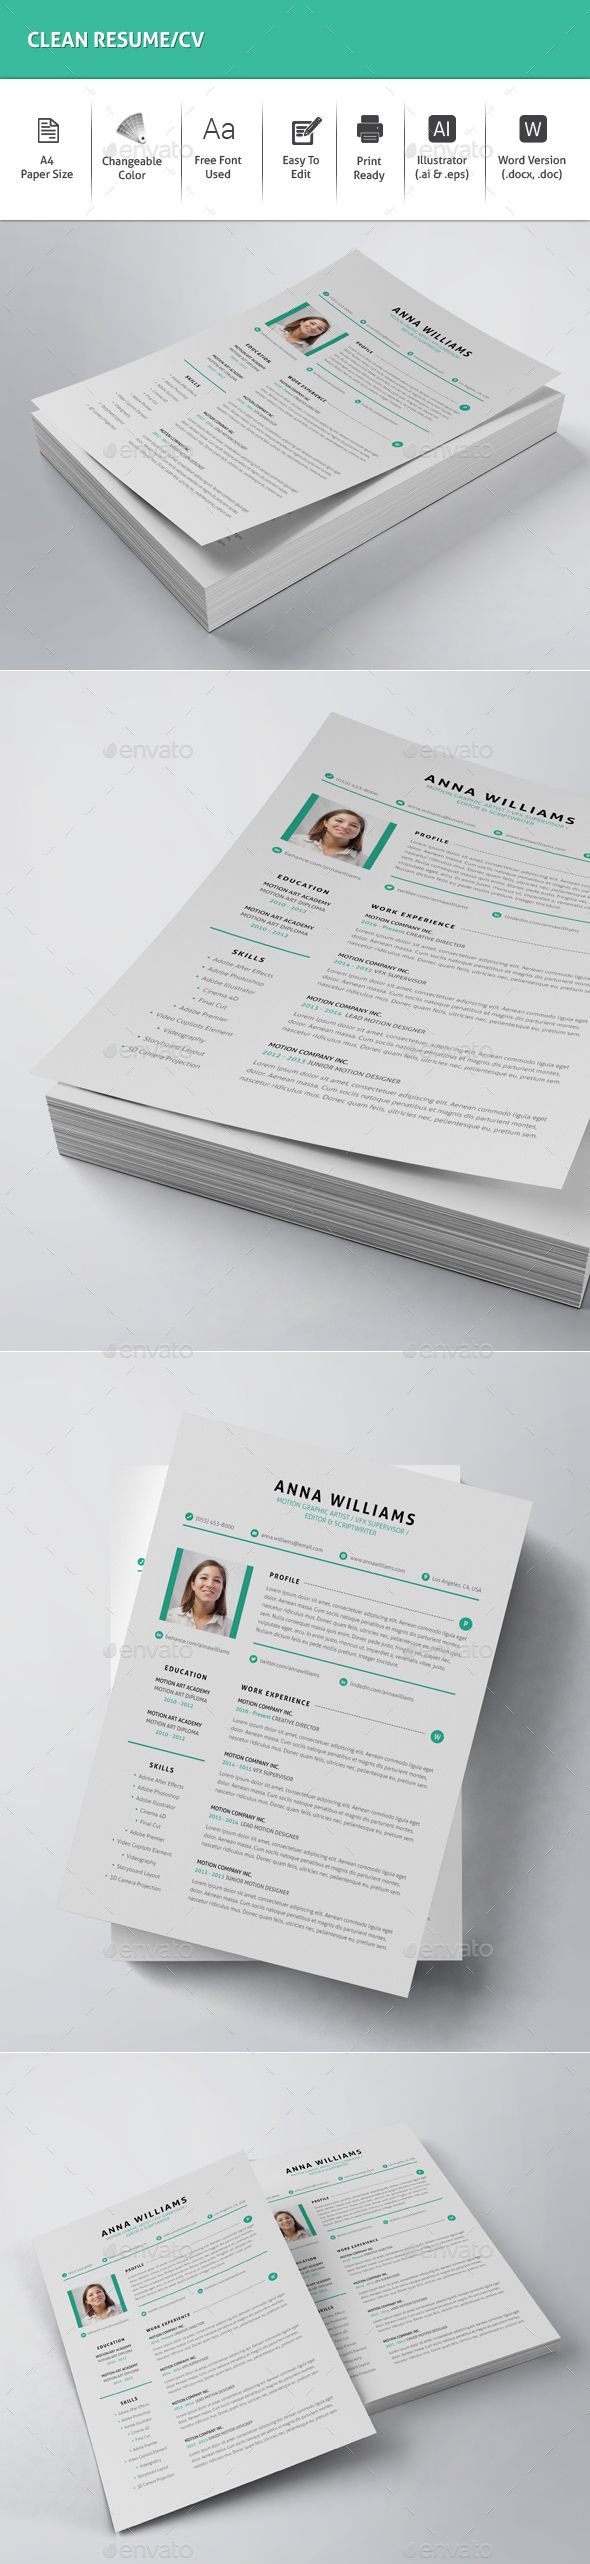 Resume Template Word Download%0A Clean  Resume CV  Resumes Stationery Download here  https   graphicriver